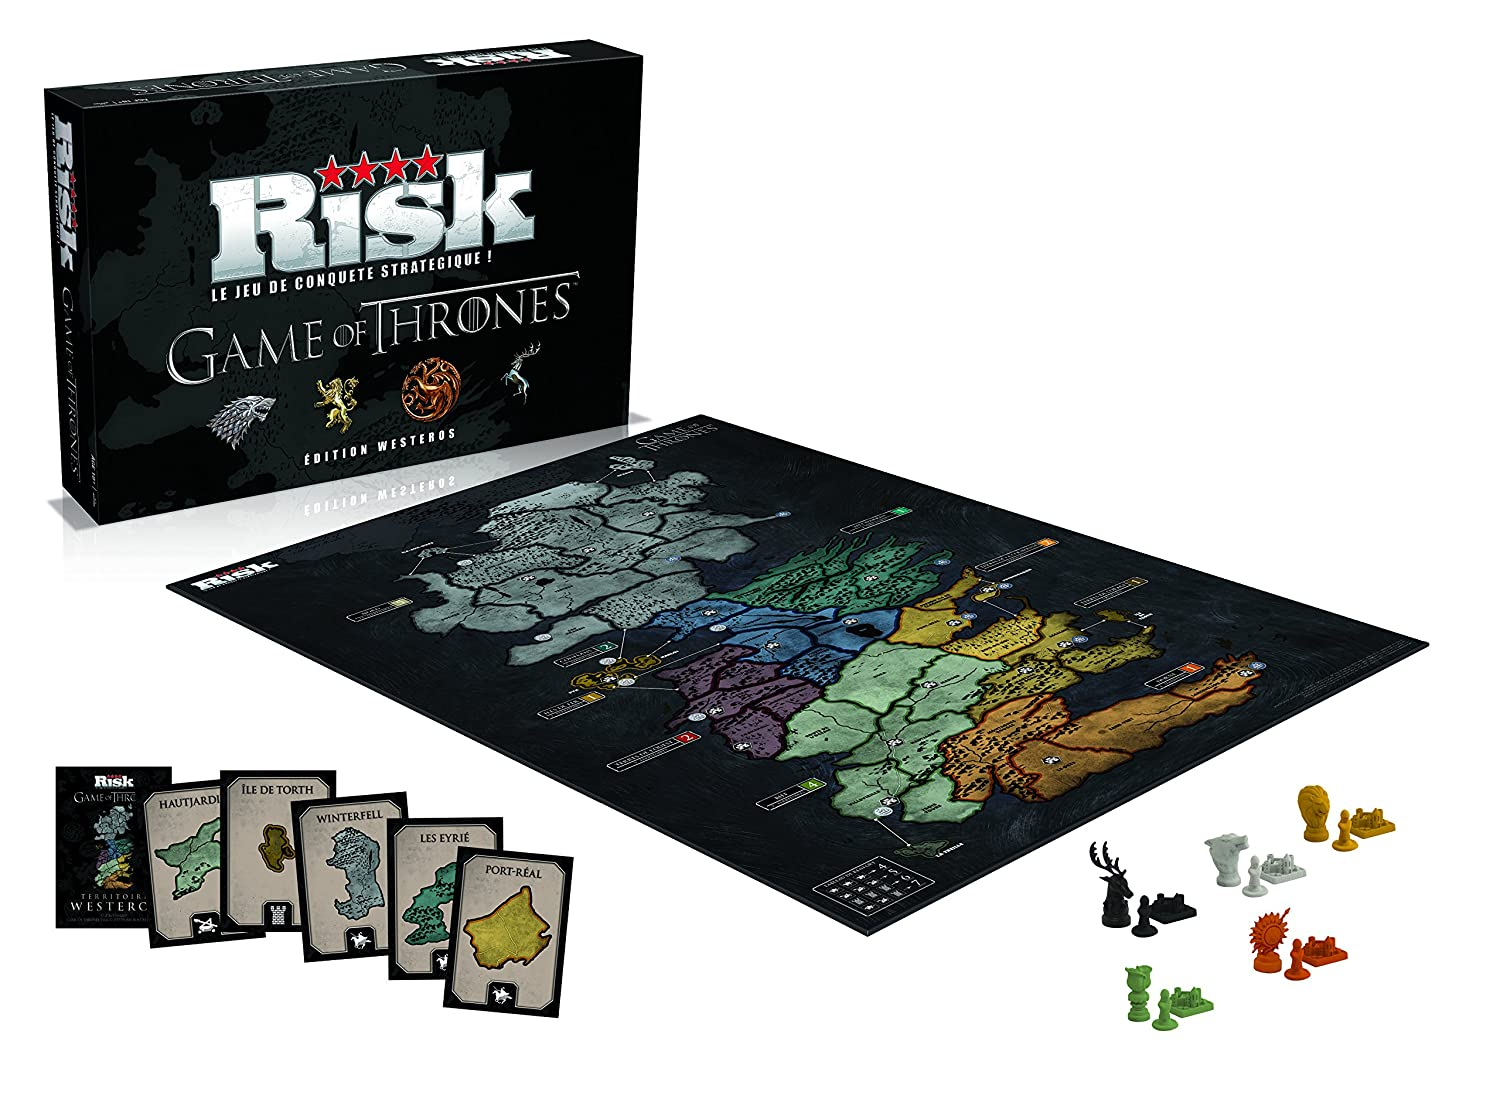 Winning Moves – 0194 – Risk Game of Thrones – Edition Westeros – Version Francesa